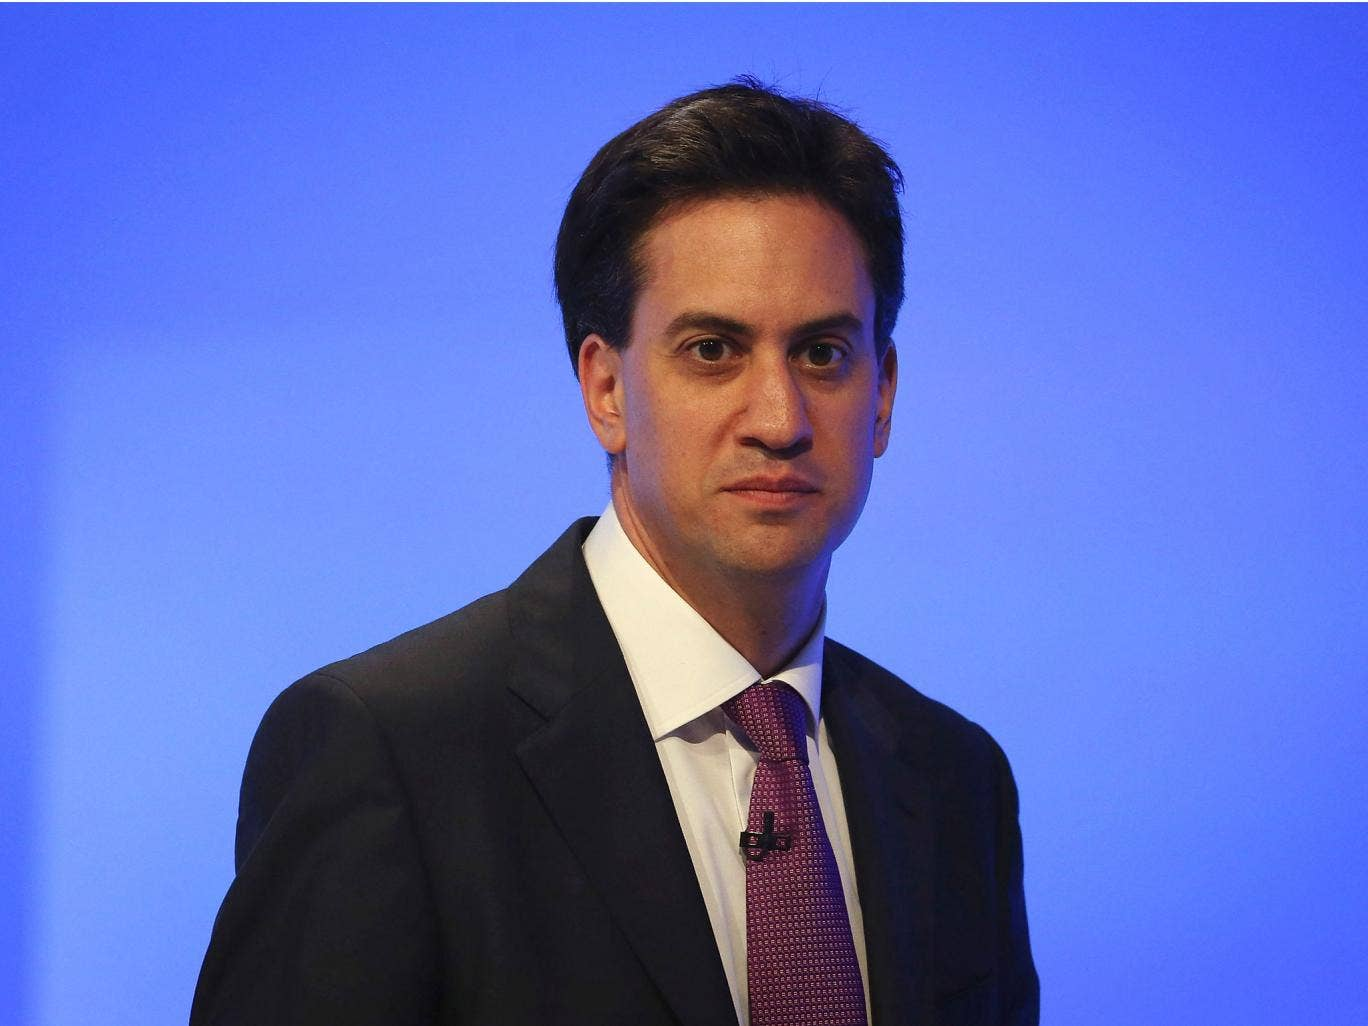 In a highly unusual move, Ed Miliband has induced the Daily Mail to grant him the right of reply to an article attacking him